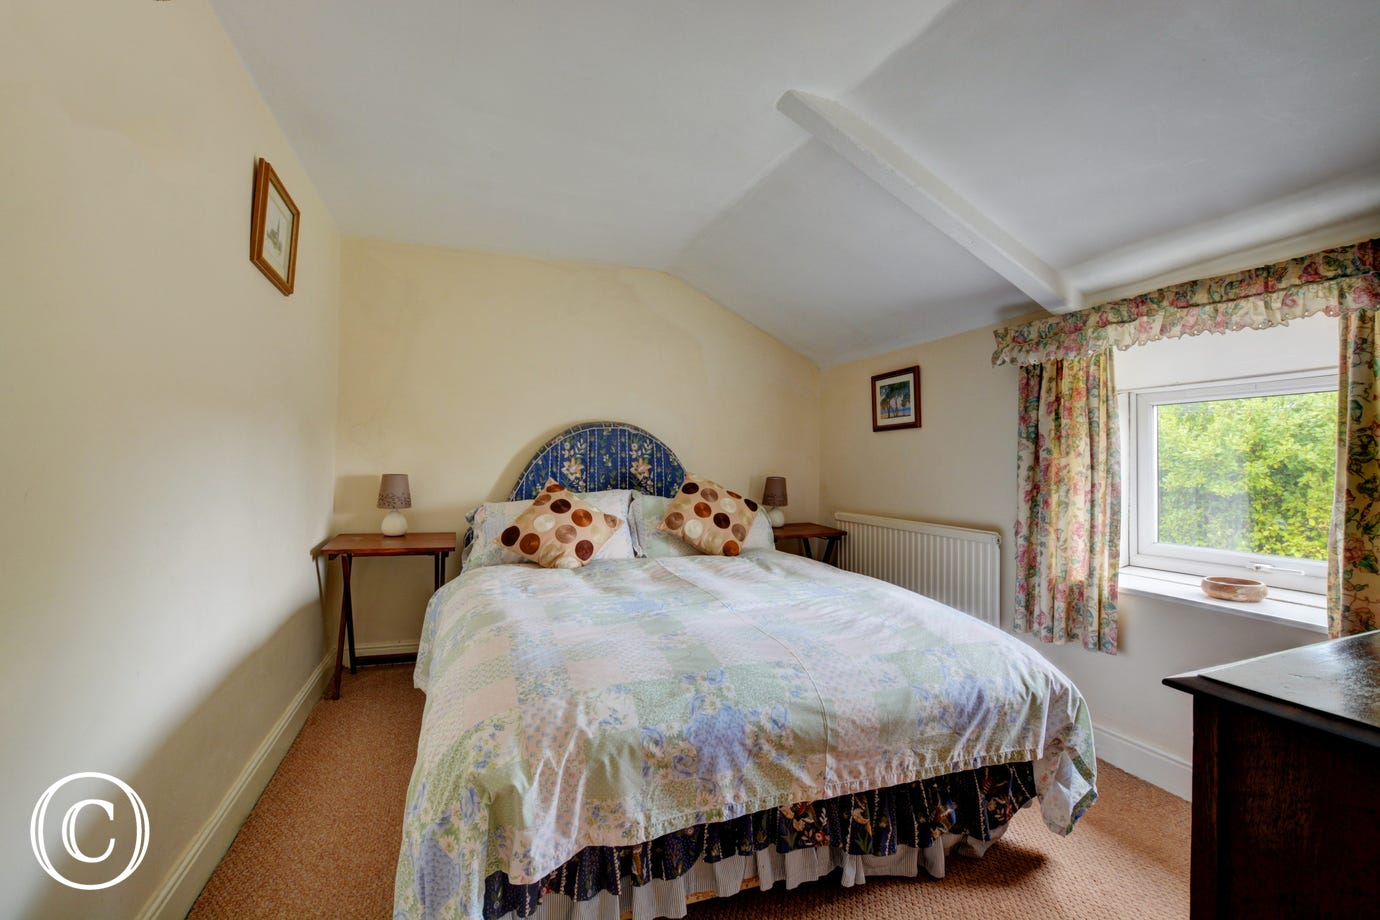 Country style double bedroom with a double bed